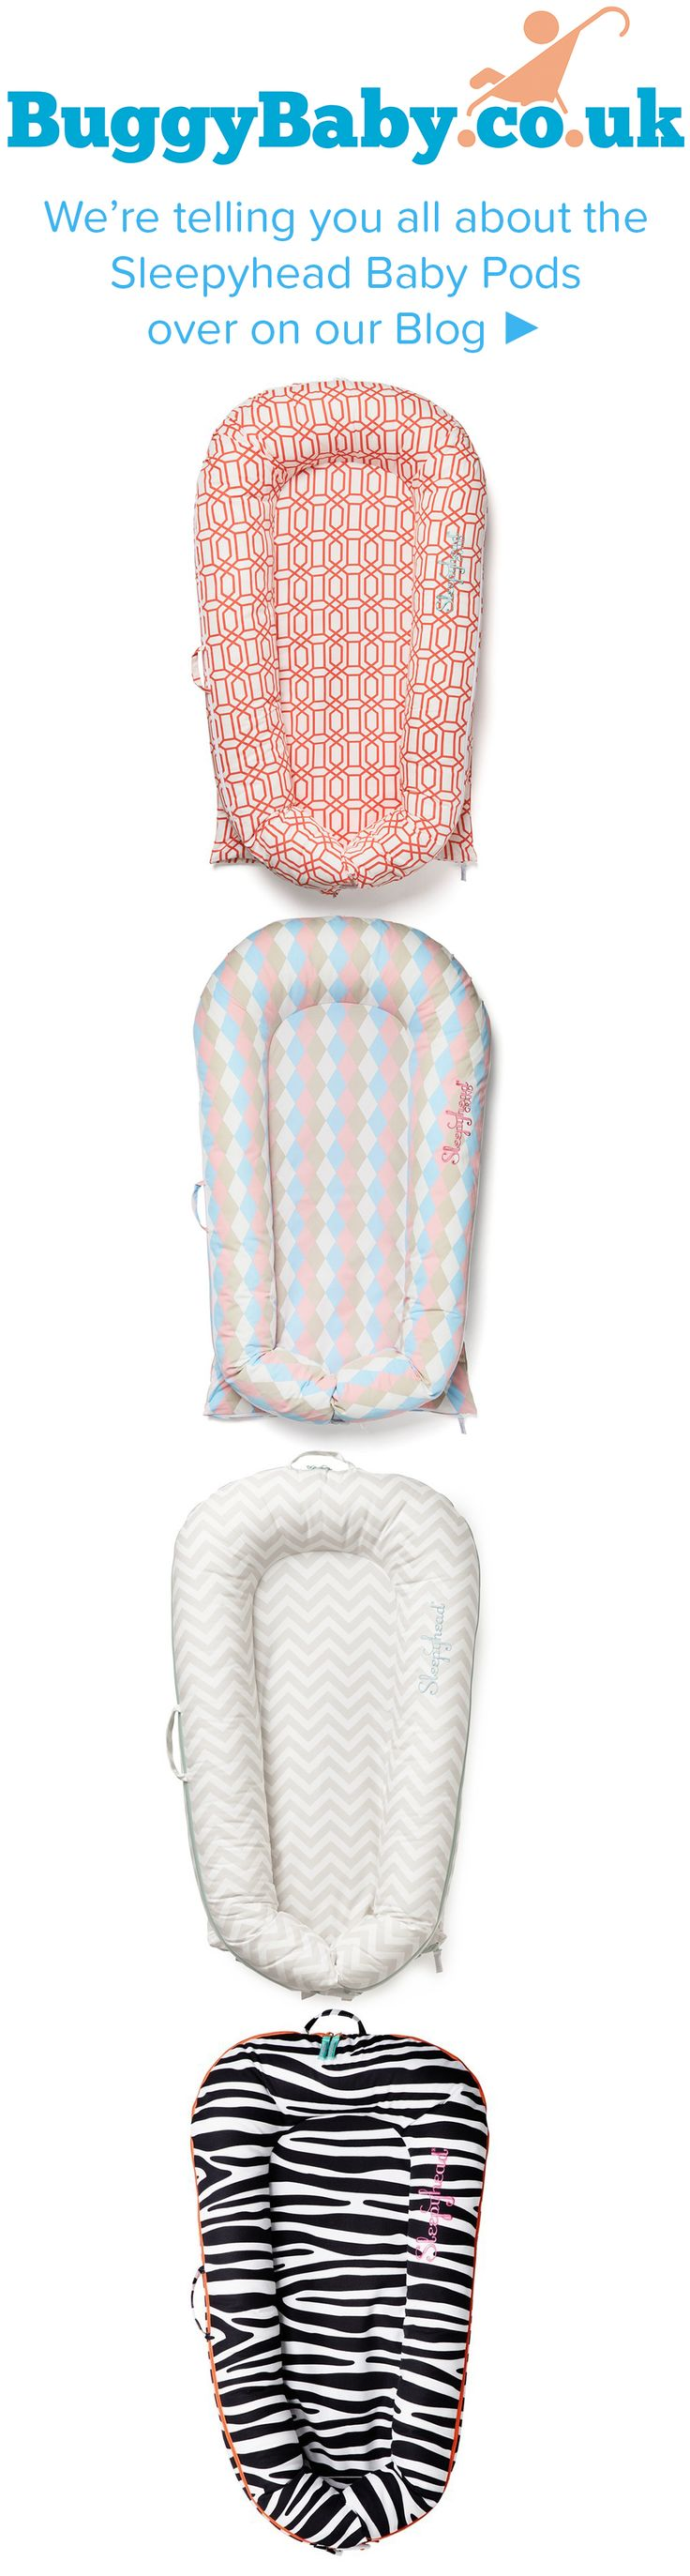 We're so excited to let you know all about the Sleepyhead Baby Pods. They are fast becoming a 'must have' because parents love them! There are two types of pods available; the Sleepyhead Deluxe Baby Pod and the Sleepyhead Grand Baby Pod. They are unique multi-functional pods with the main purpose of being used as a sleep aid by making babies feel secure.